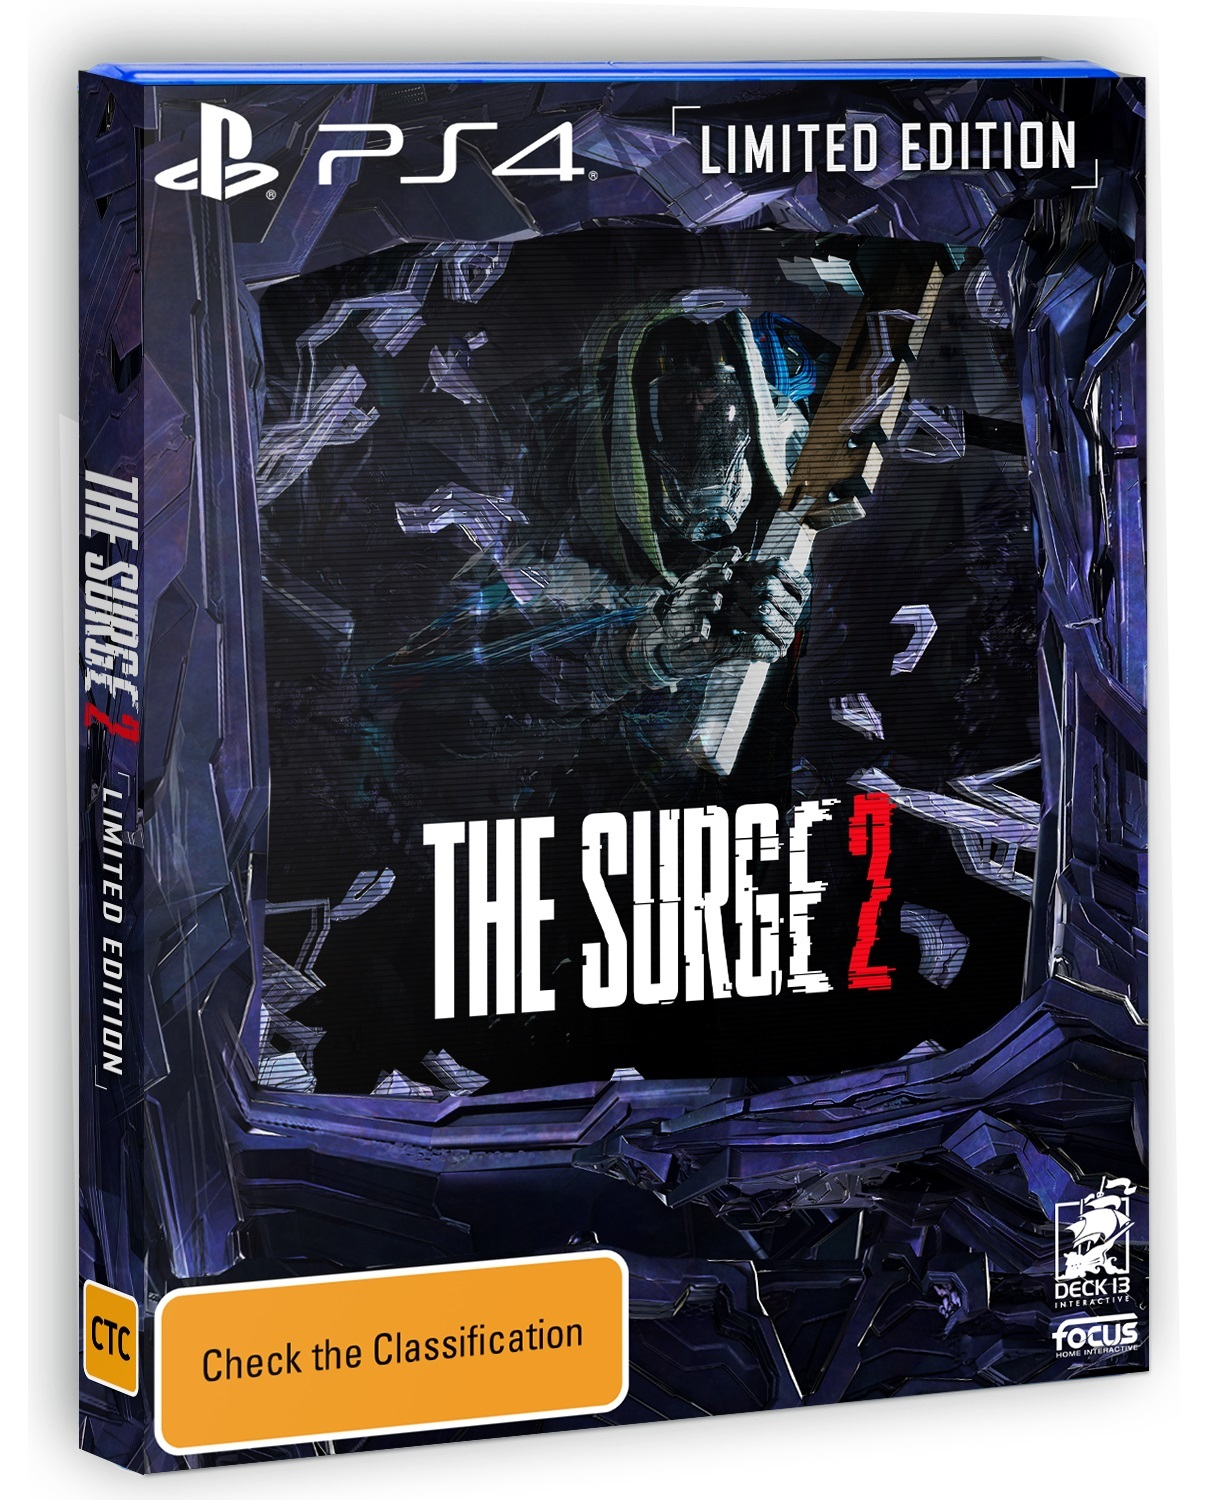 The Surge 2 Limited Edition for PS4 image